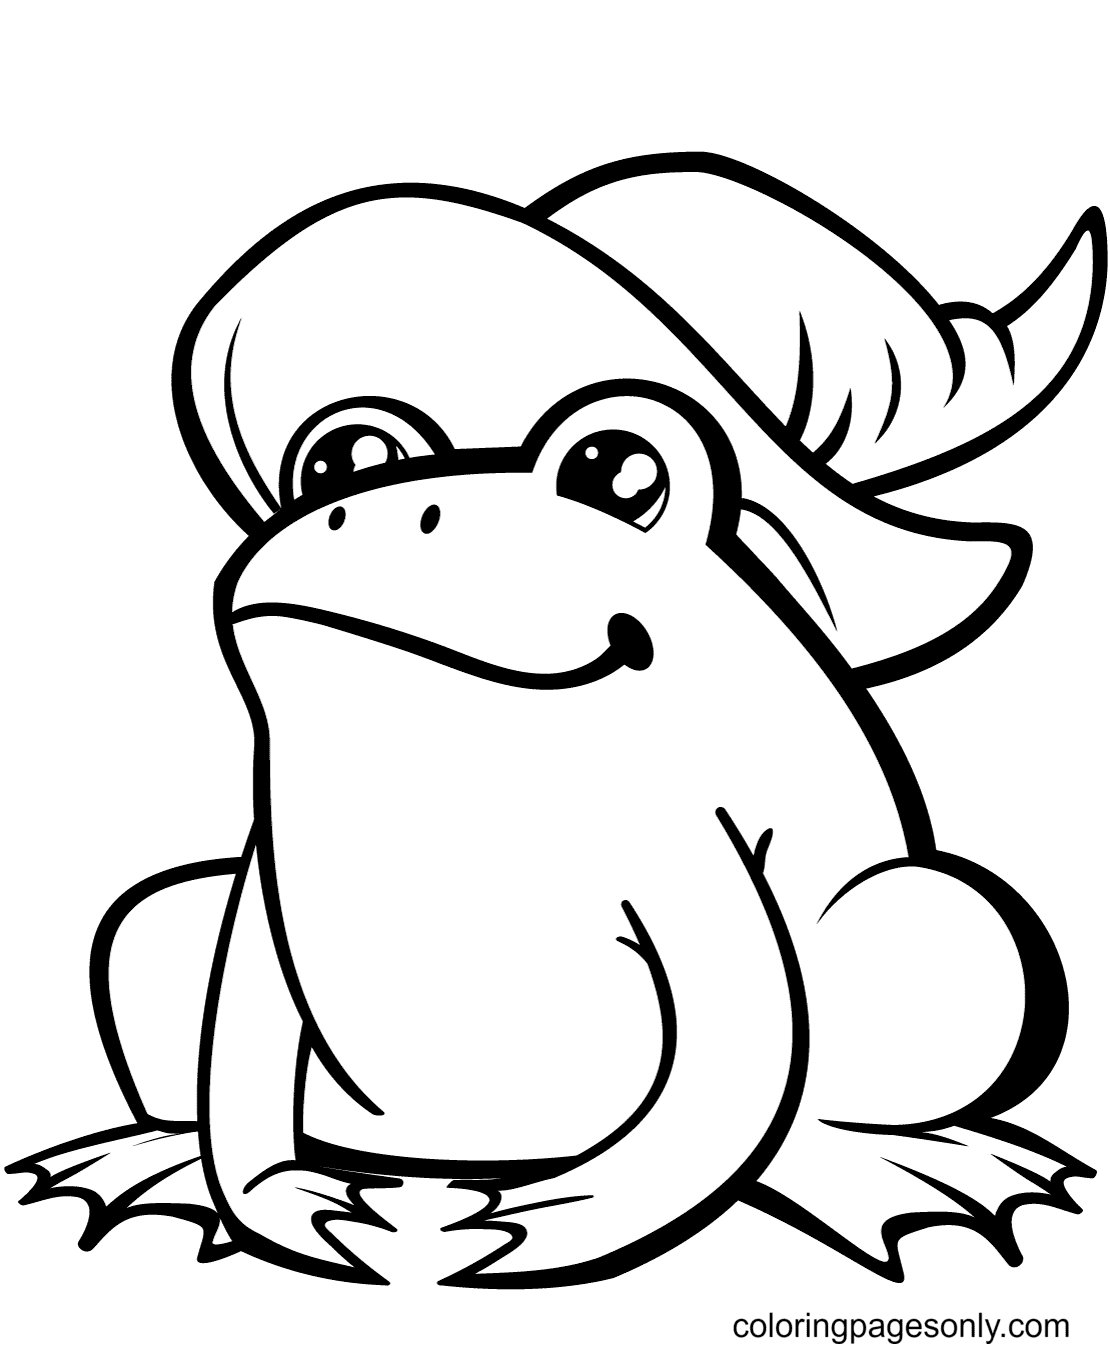 Cute Frog in Witch Hat Coloring Page